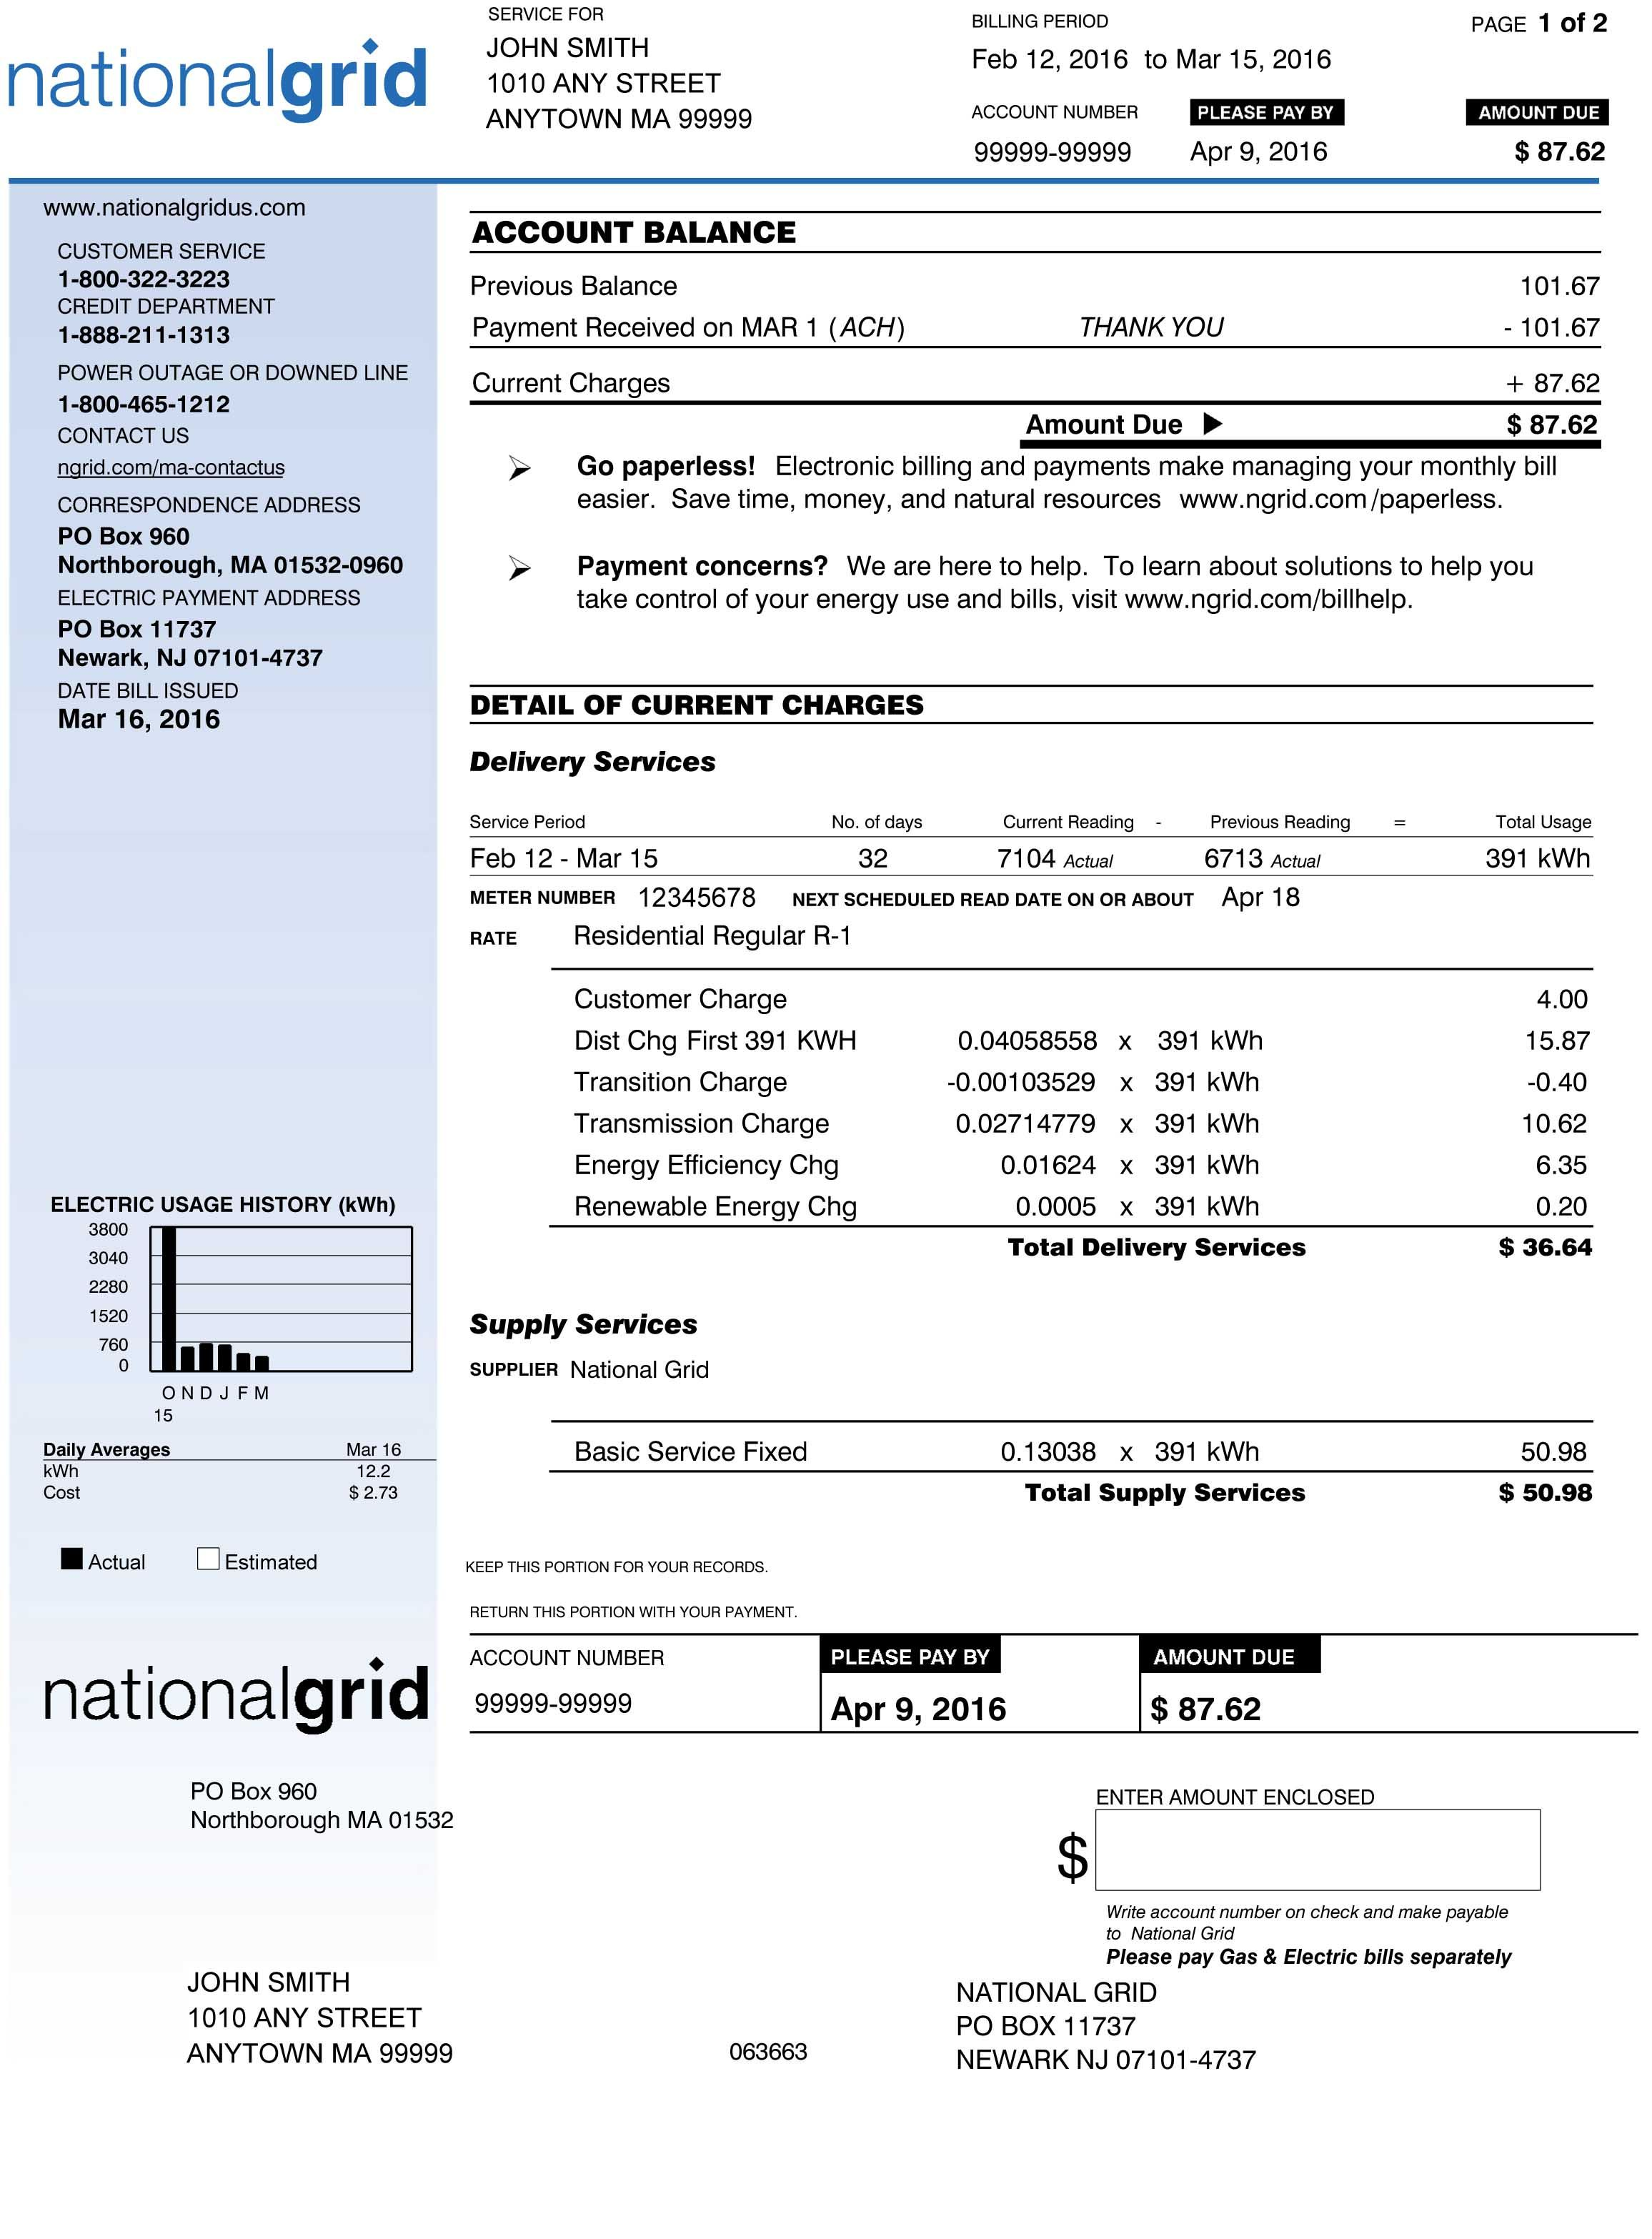 Utility Statement Nationalgrid